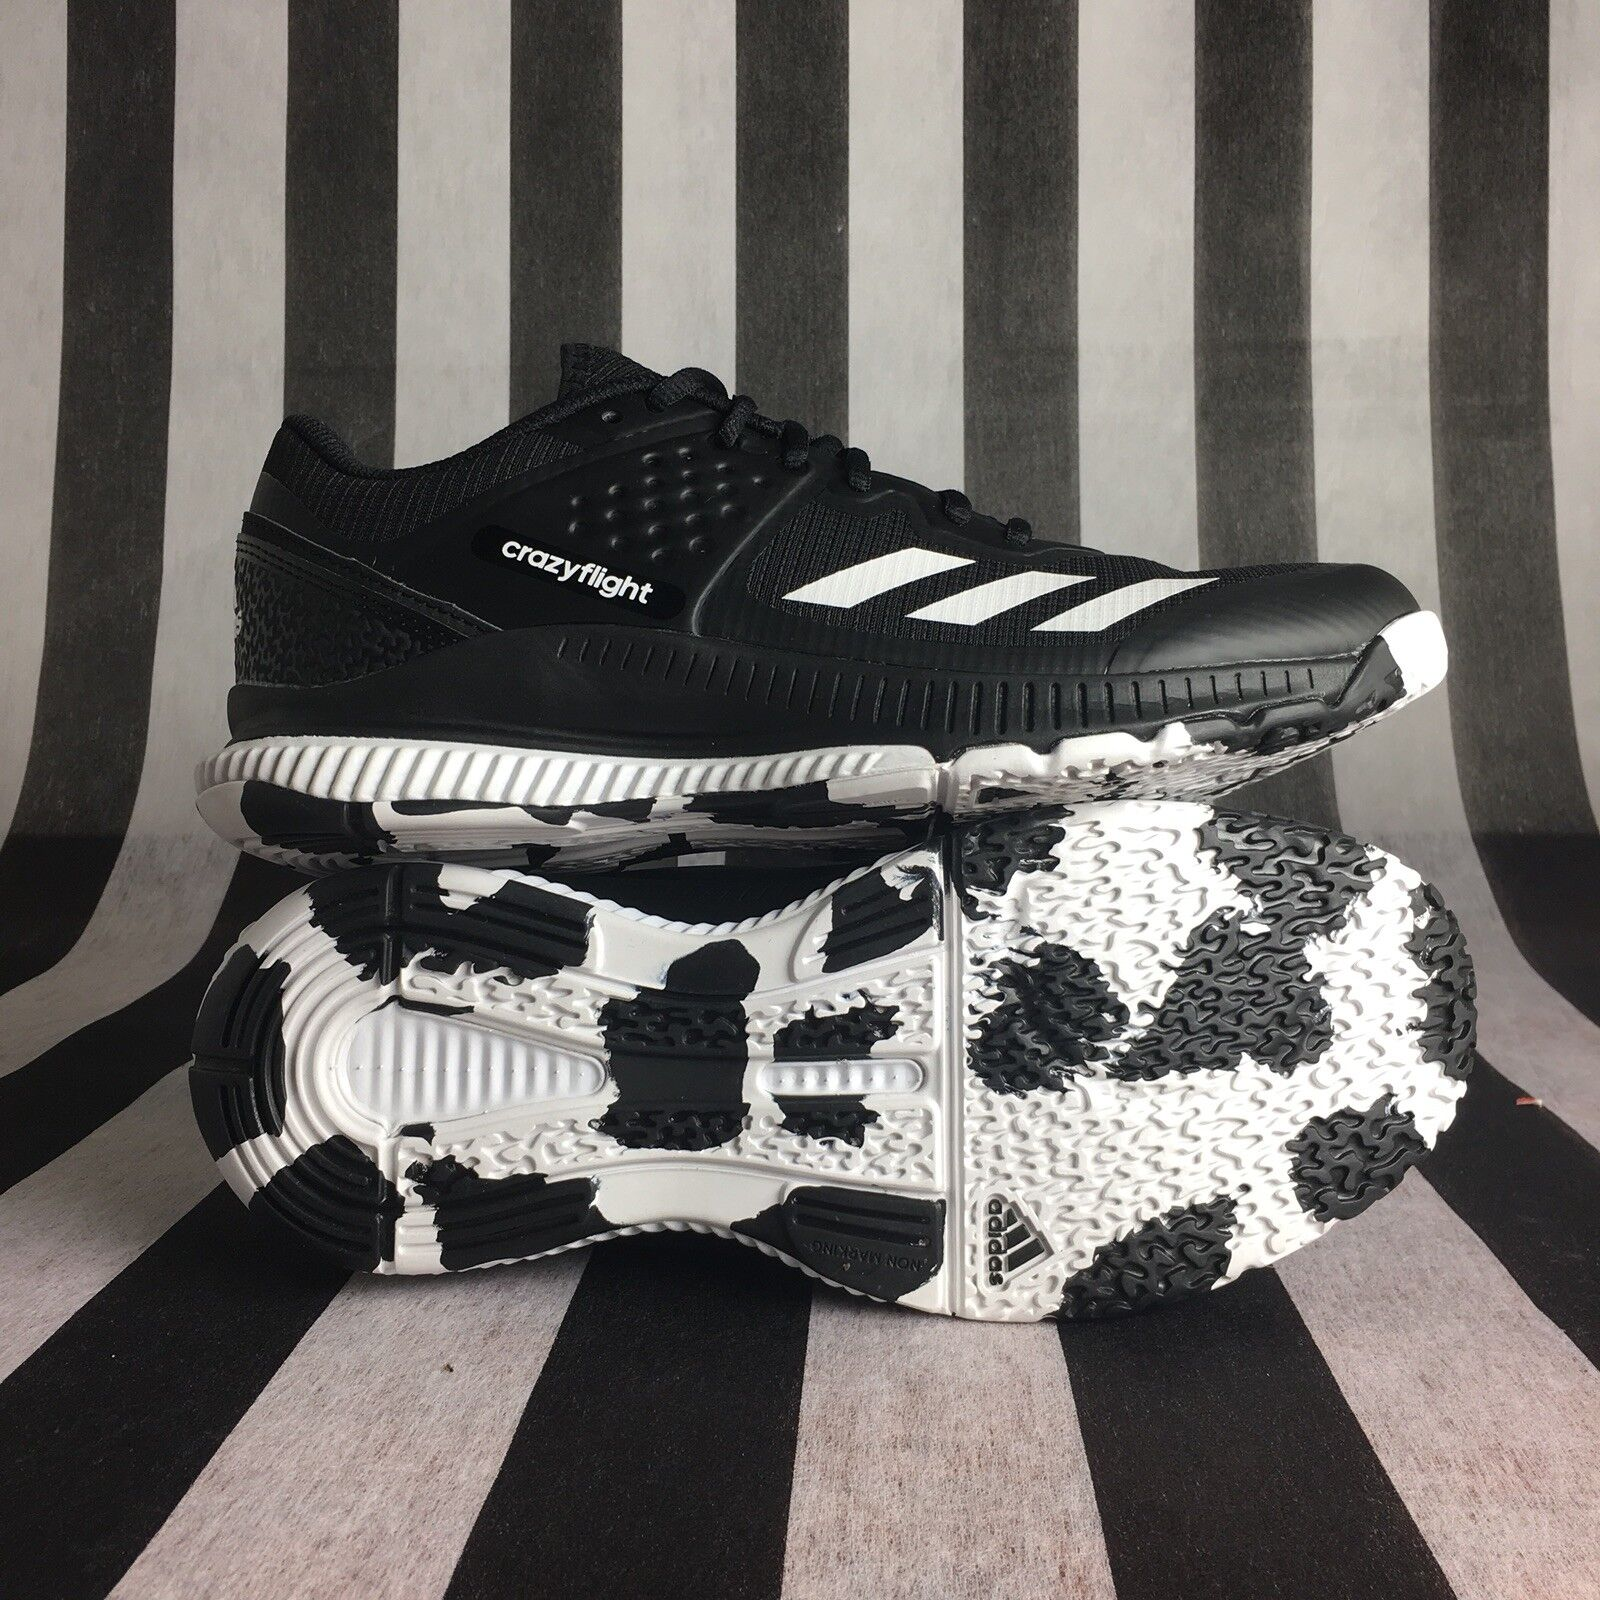 7a4a749a4ff91 ... Adidas Adidas Adidas Women s Crazyflight Bounce Volleyball-Shoes  Mystery Ink White Ice Sz ...